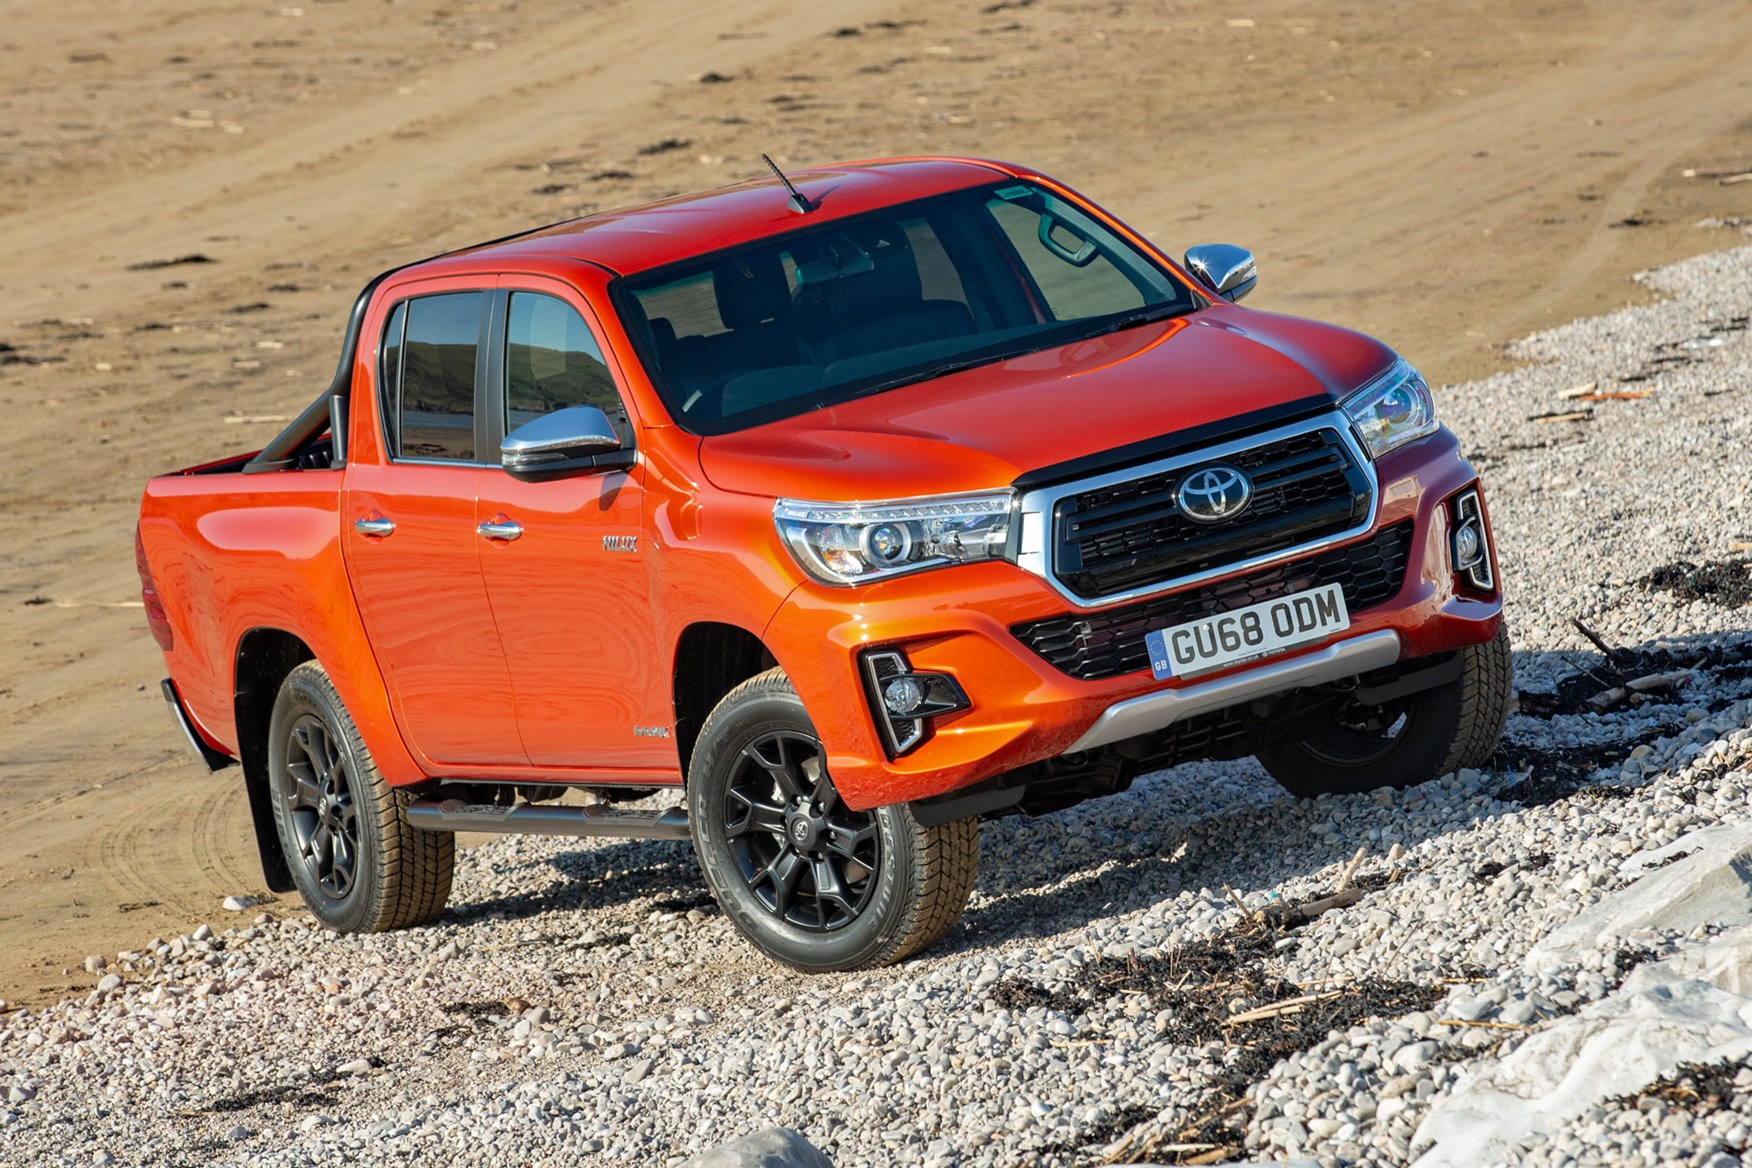 Toyota Hilux Invincible X review - front view, orange